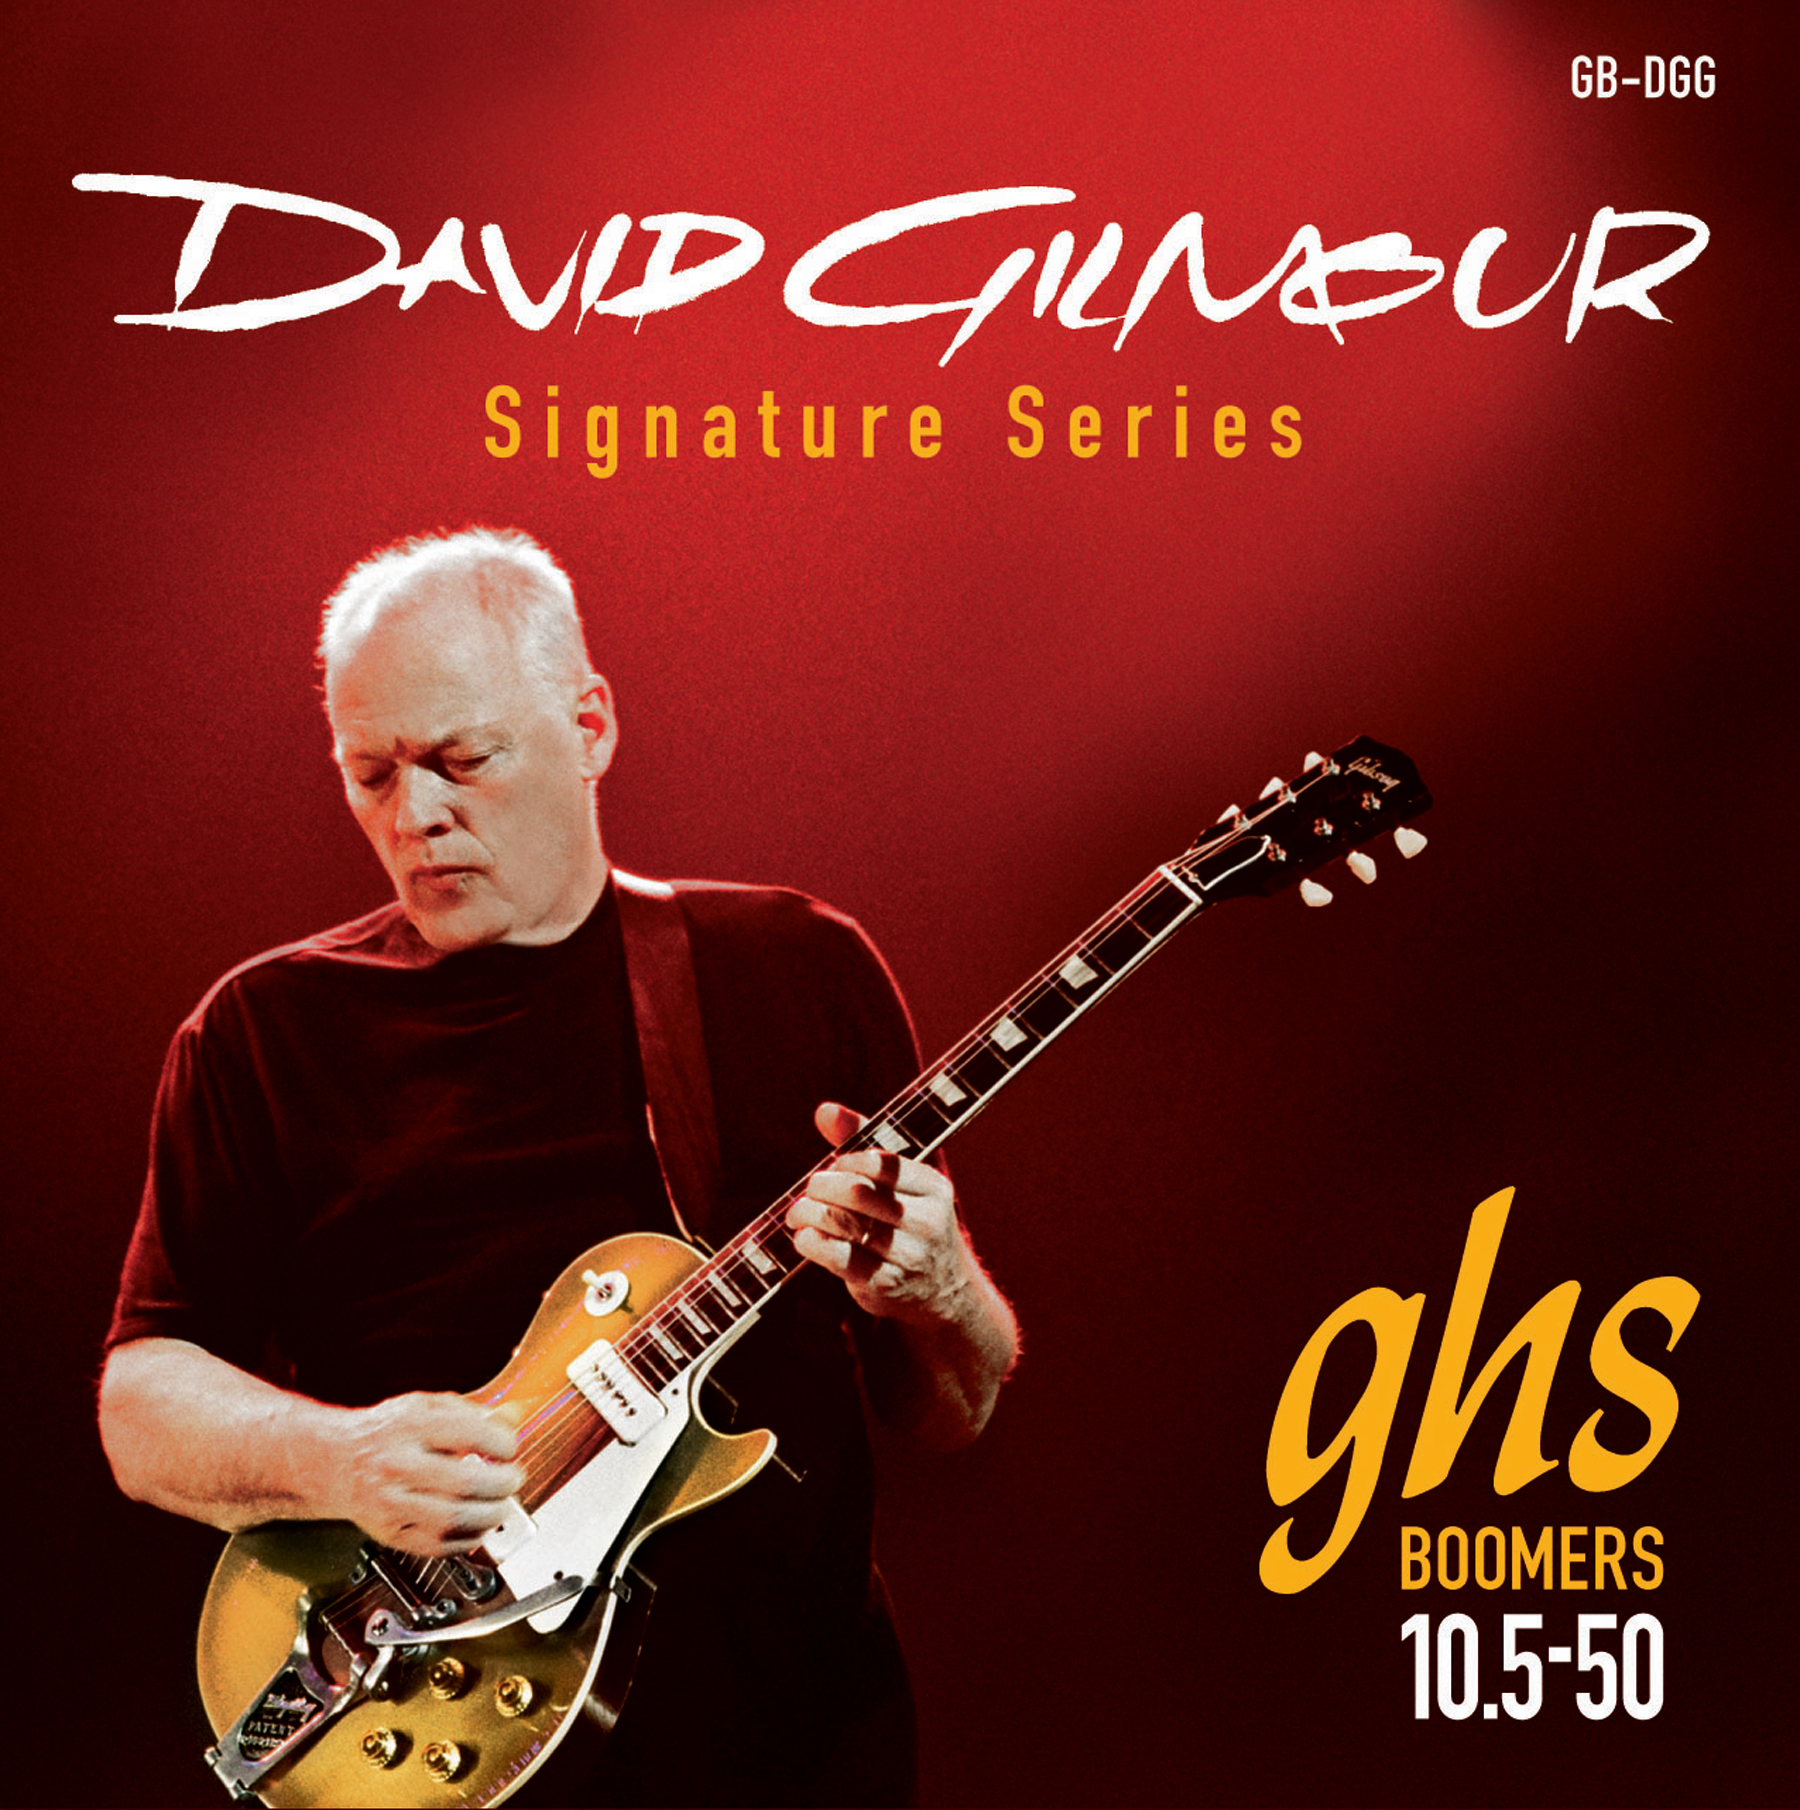 GHS MUTA GB-GG GILMOUR - David Gilmour Sign. - Red Set (Gibson)